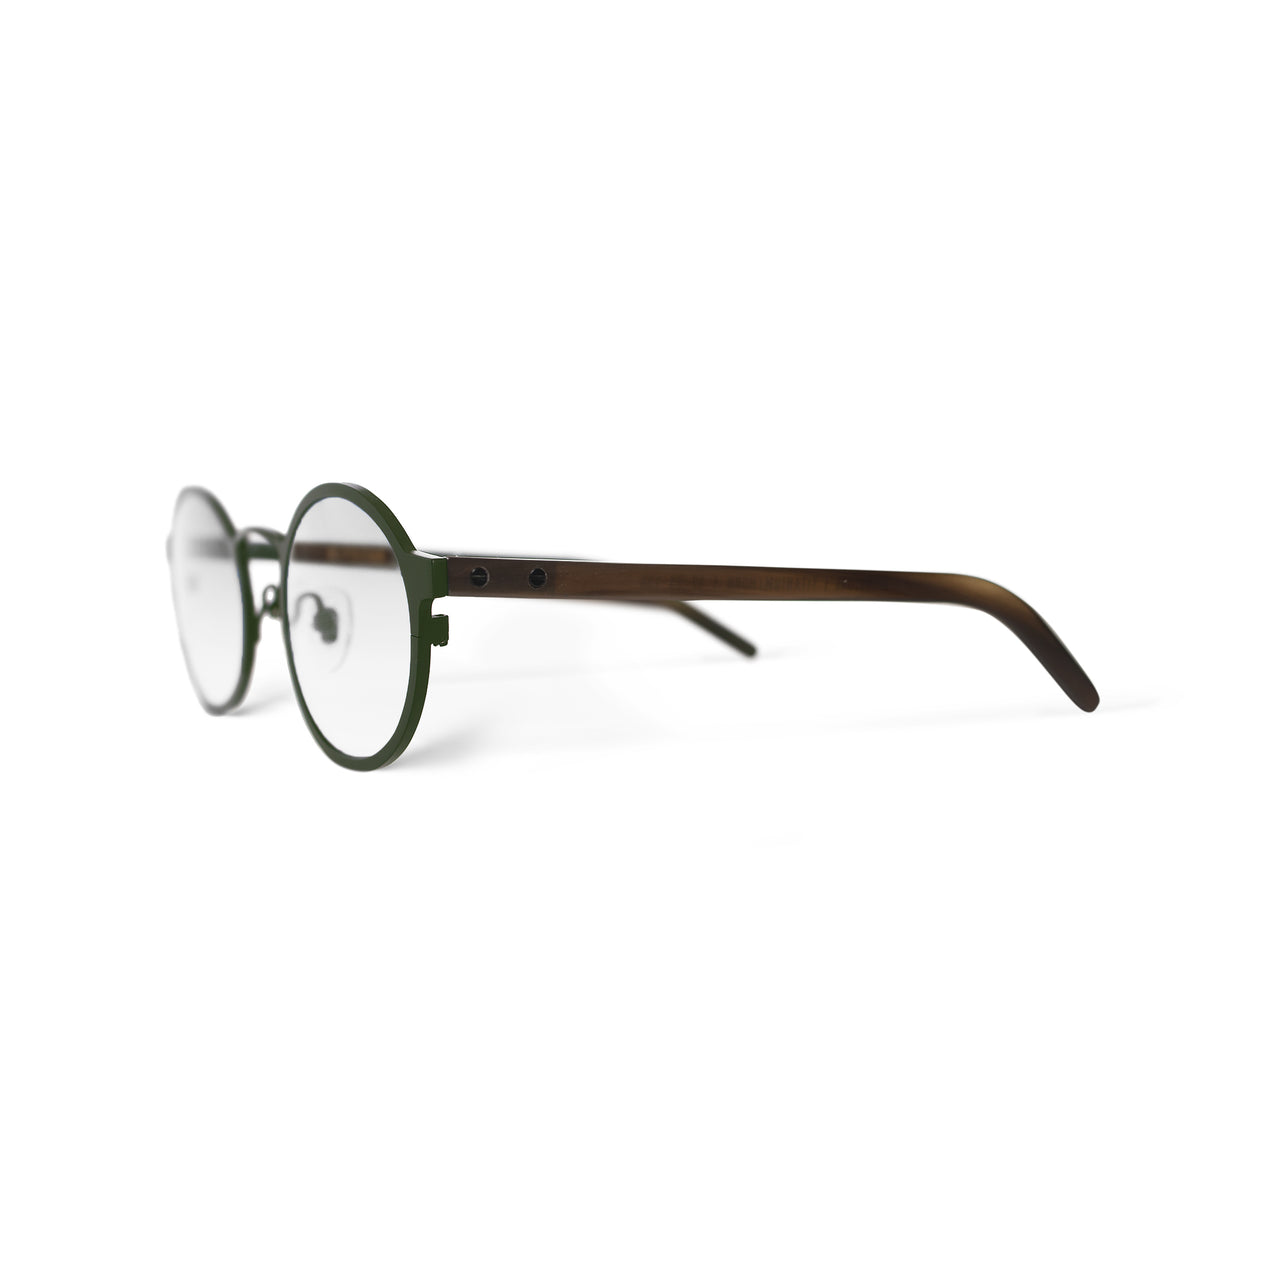 Metal / Horn. Olive / Blonde. Clear Lens. - BLYSZAK eyewear eyewear - eyewear, optical, sunglasses